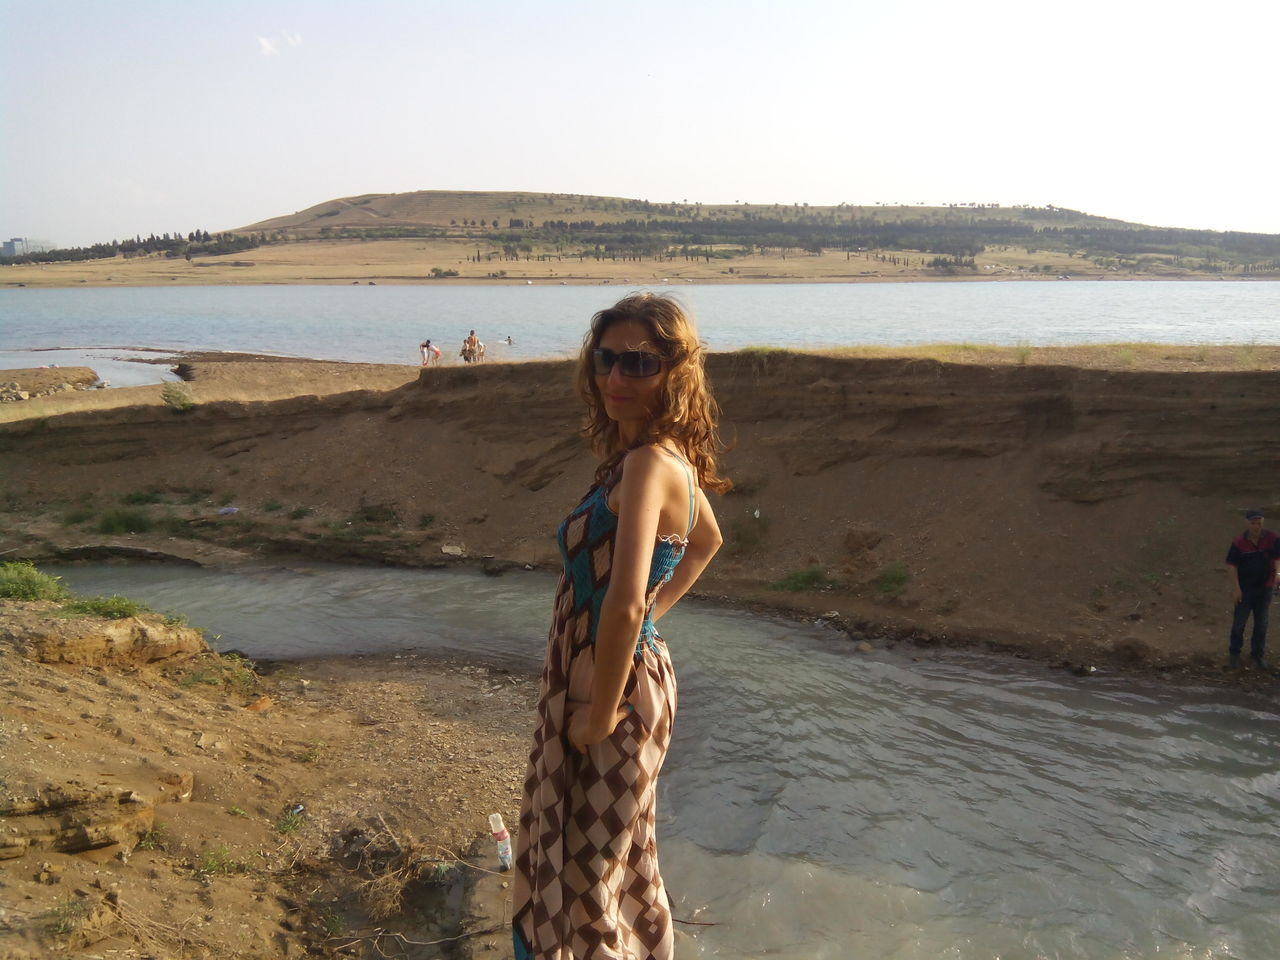 beauty on sea Beauty On Sea Adult Beach Beautiful Woman Beauty Day Nature One Person One Woman Only One Young Woman Only Only Women Outdoors People Sand Sea Smiling Tbilisi Sea Water Young Adult Young Women